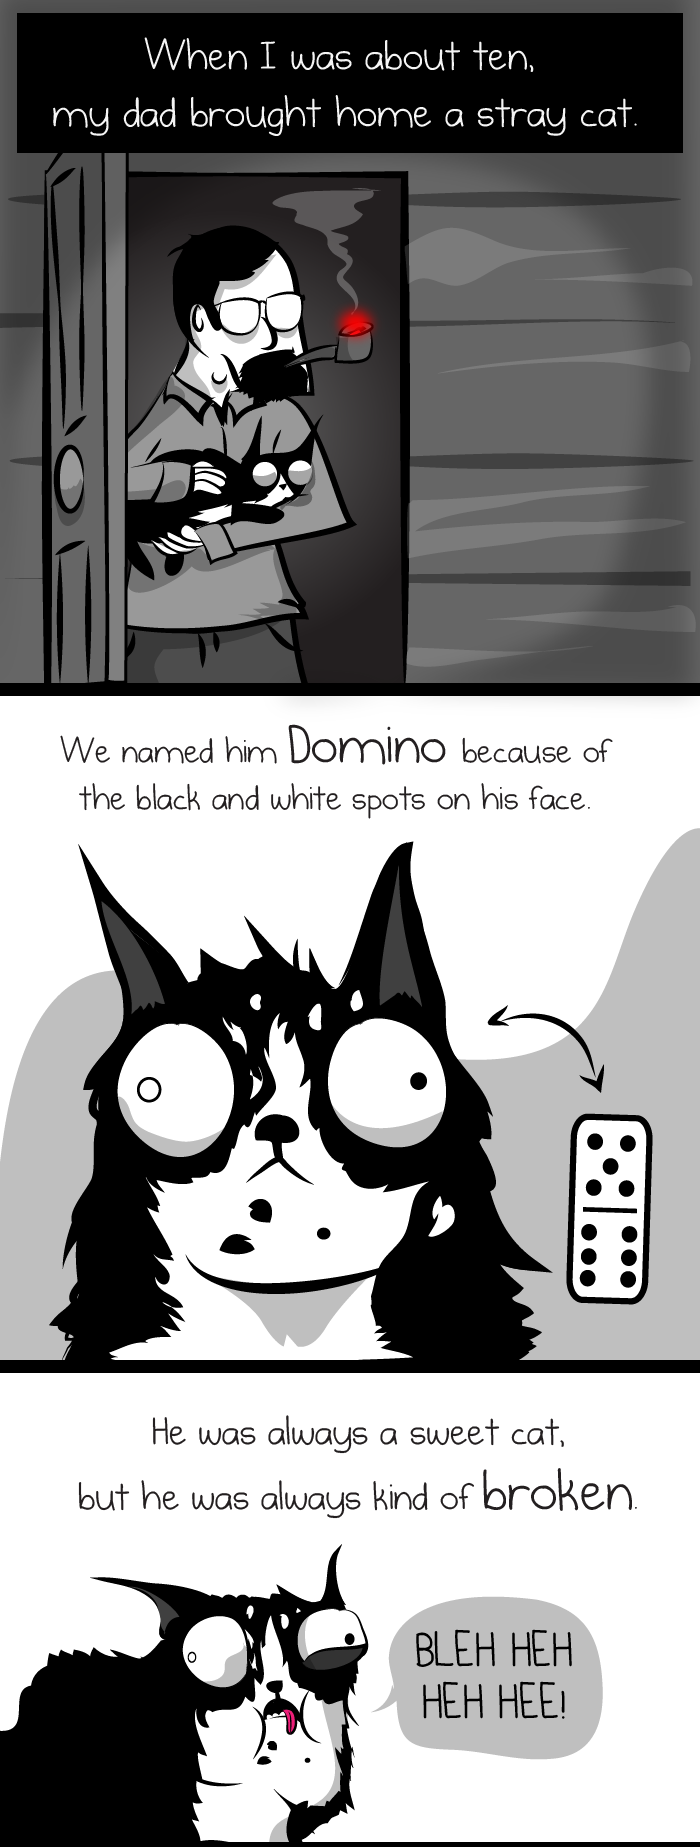 Domino the cat